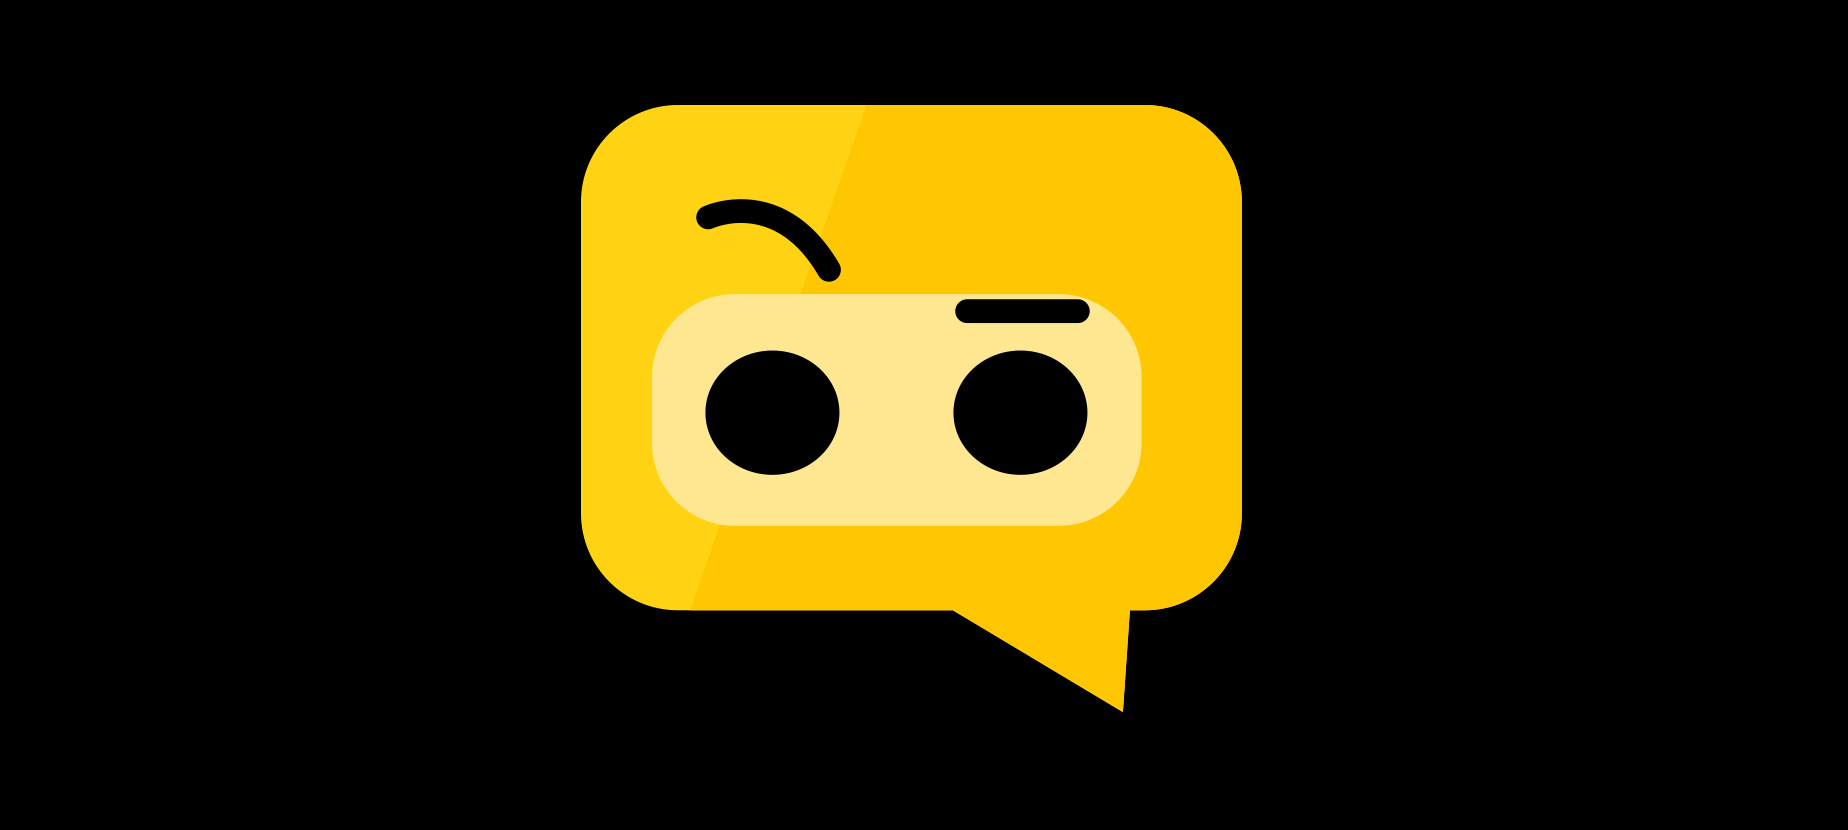 The AA chatbot